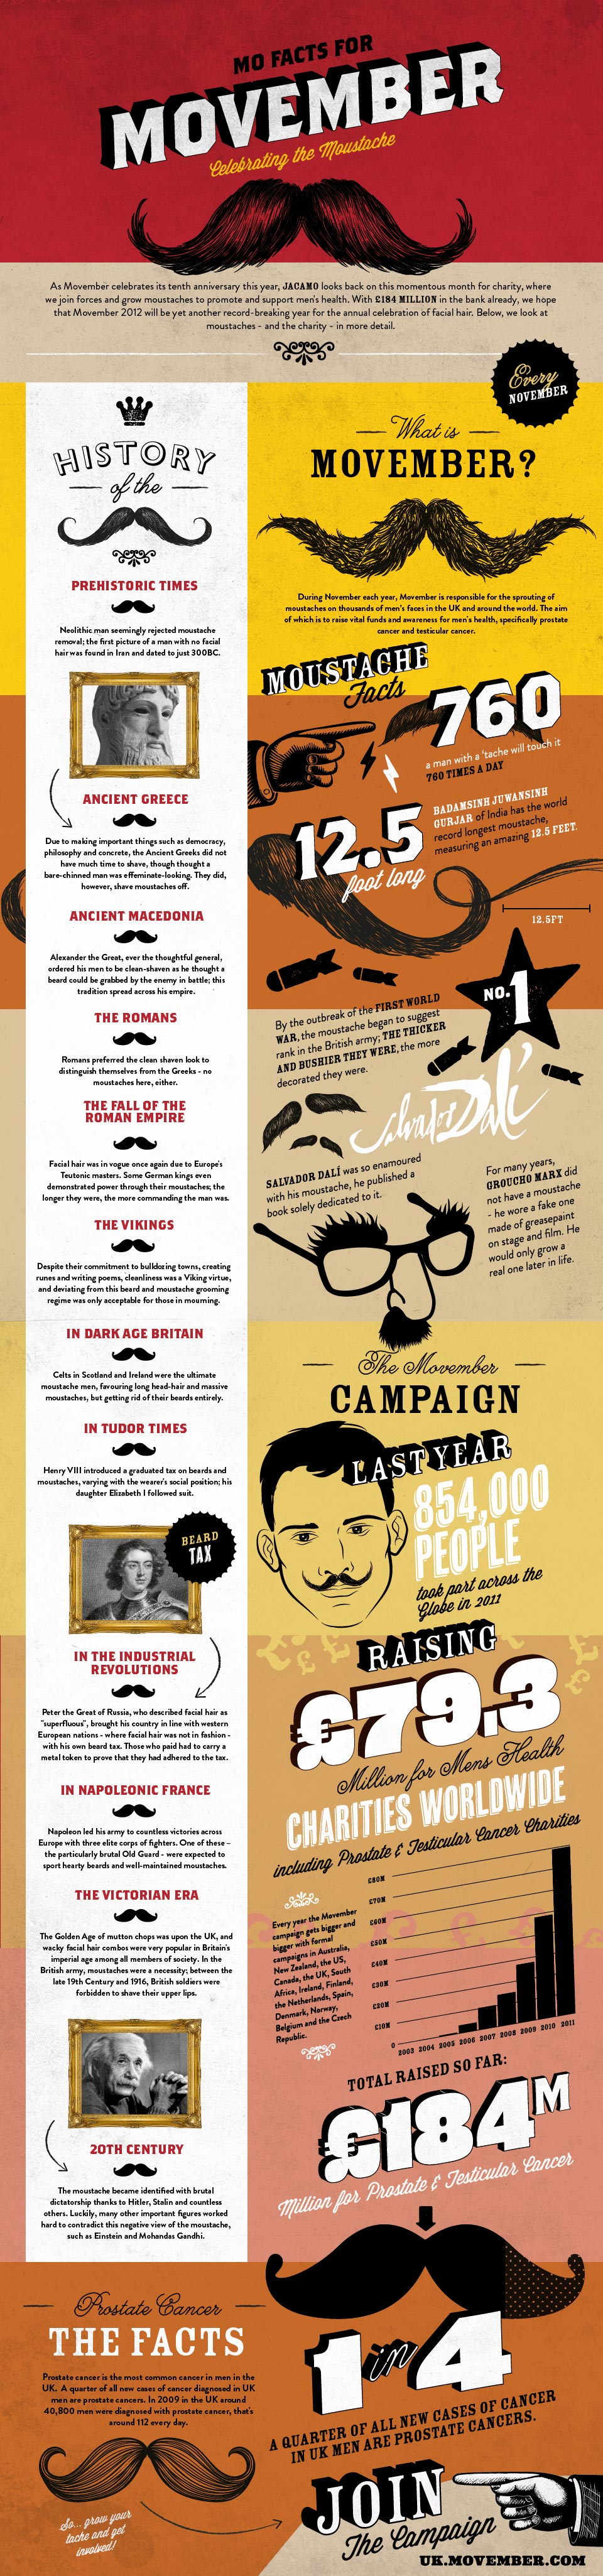 Mo Facts for Movember: Celebrating the Moustache - An Infographic from Infographics Showcase